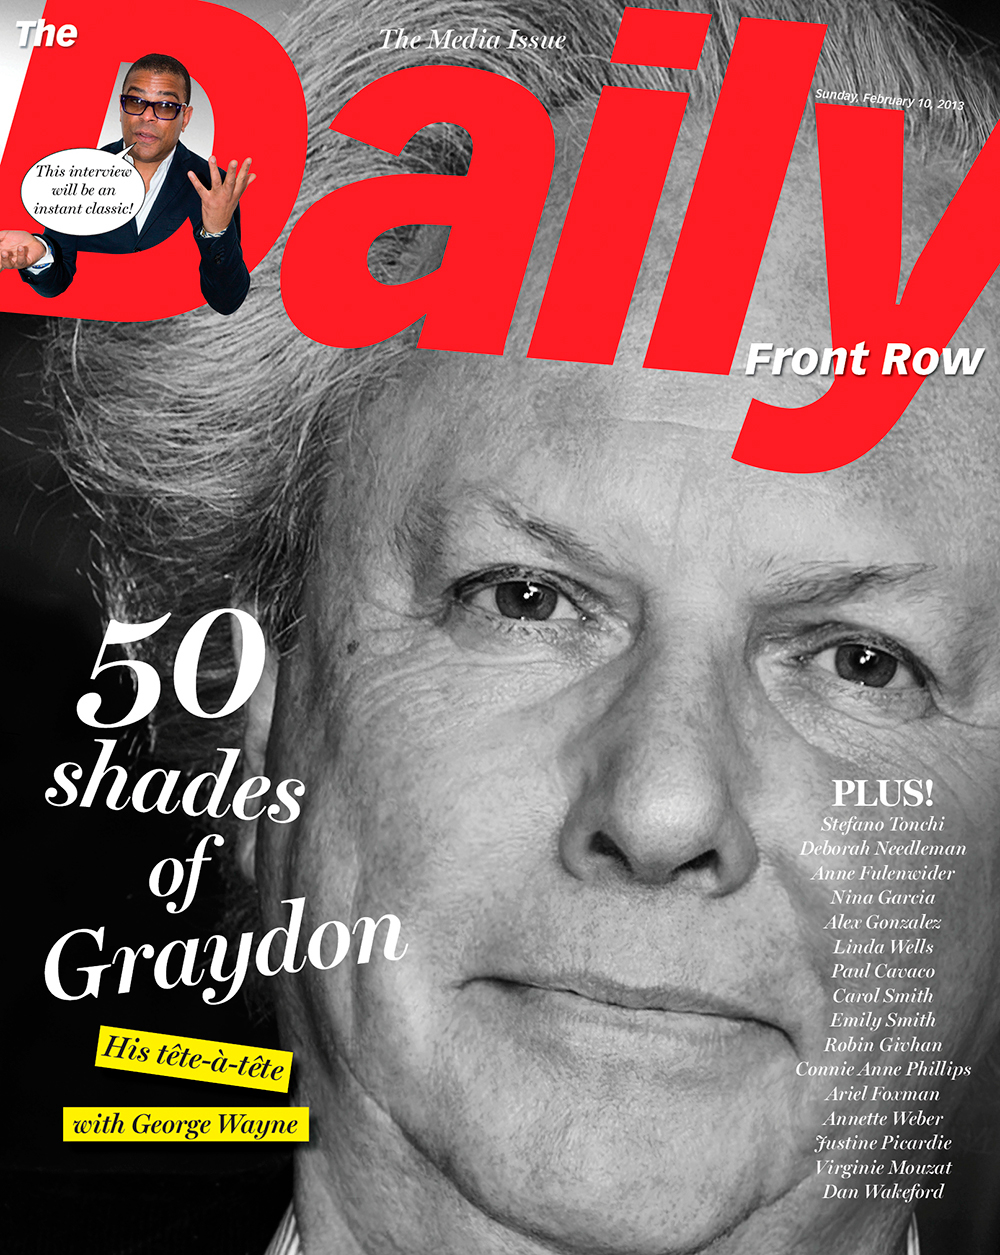 Vanity Fair Editor in Chief Graydon CarterEdward Graydon Carter, CM is a Canadian journalist who served as the editor of Vanity Fair from 1992 until 2017. He also co-founded, with Kurt Andersen and Tom Phillips, the satirical monthly magazine Spy in 1986. In 2019, it was announced he is launching a new weekly newsletter called Air Mail, which is for {quote}worldly cosmopolitans.{quote}